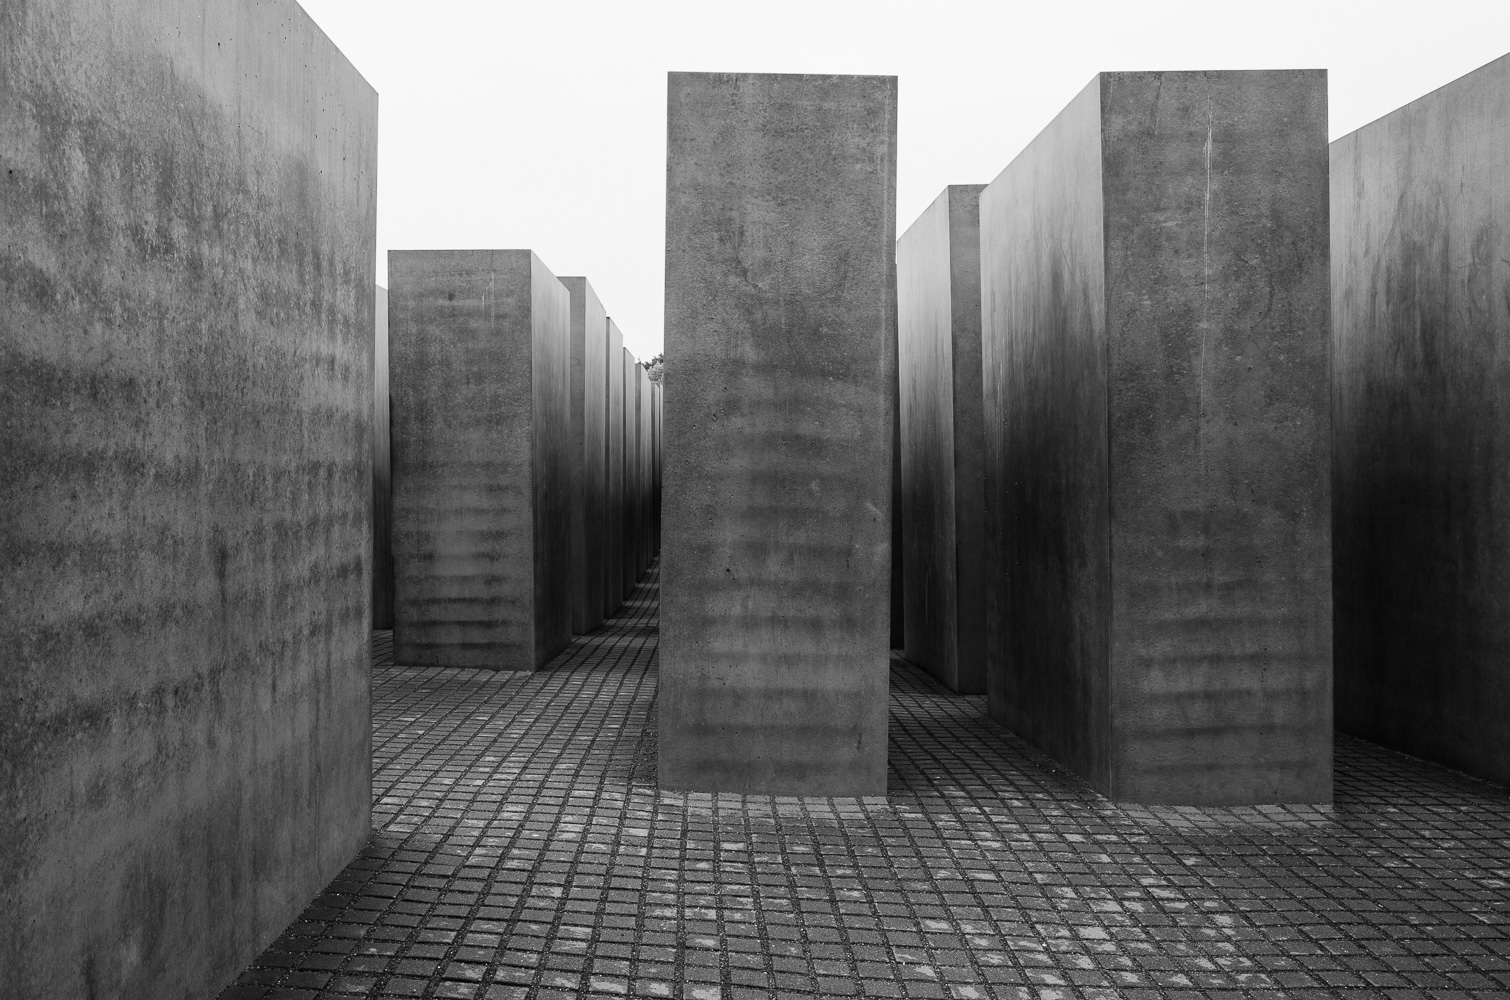 dacian-groza-concrete-black-and-white-architectural-photography-18-000154.jpg